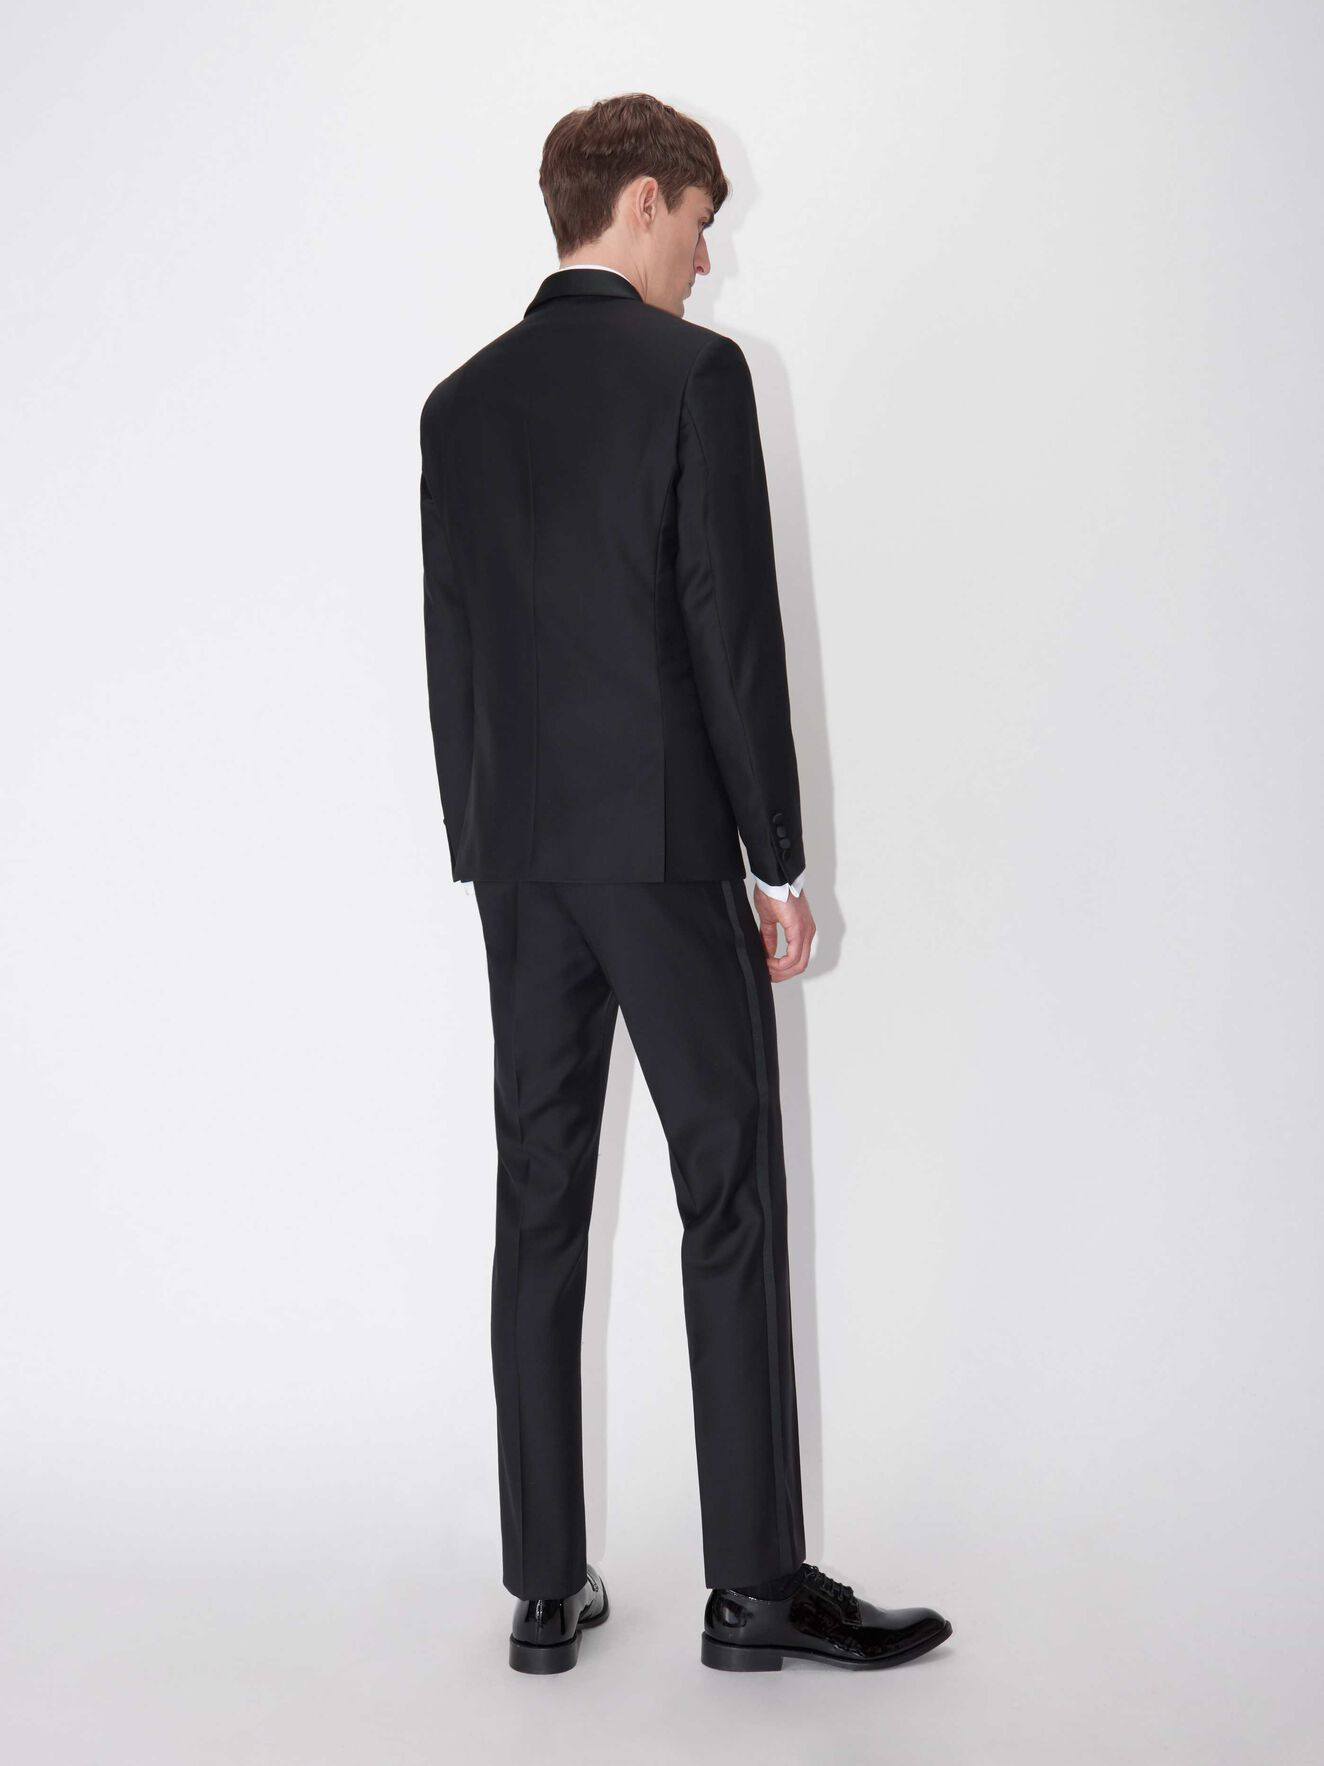 Terriss Trousers (Short Size) in Black from Tiger of Sweden